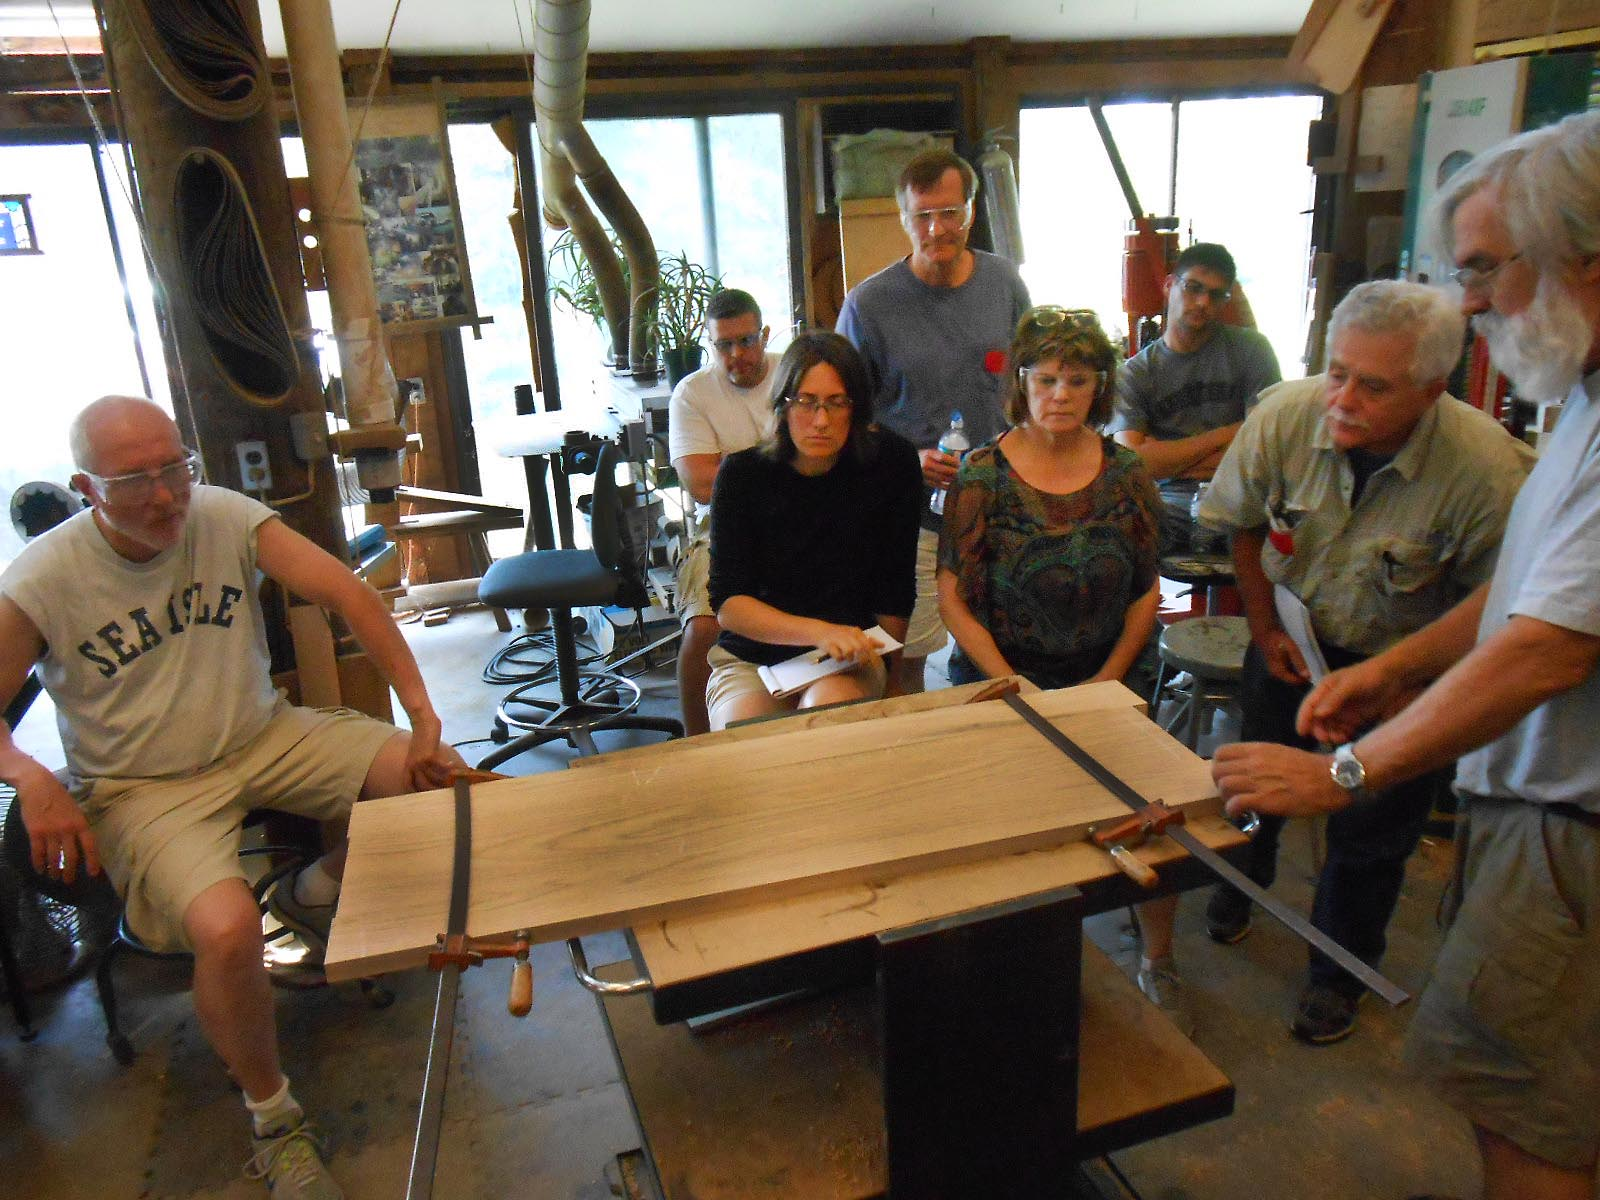 Woodworking woodworking class PDF Free Download